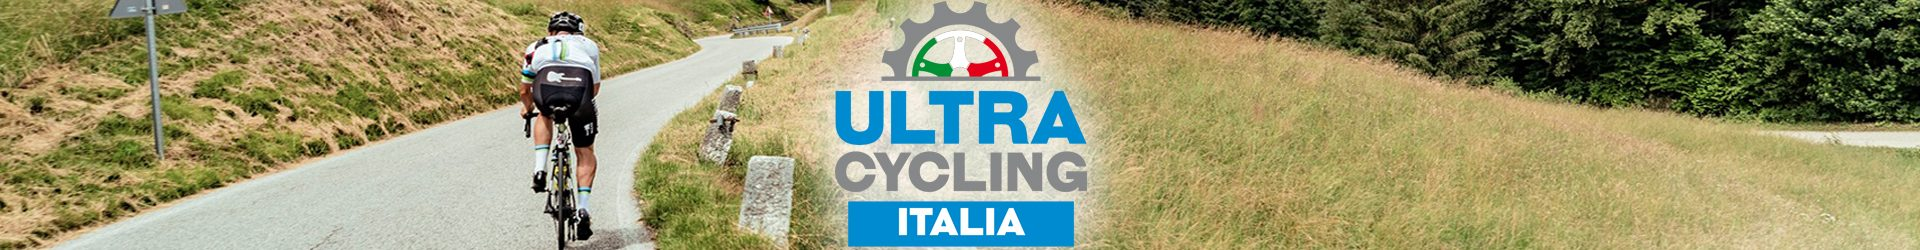 Il portale dell'Ultracycling in Italia